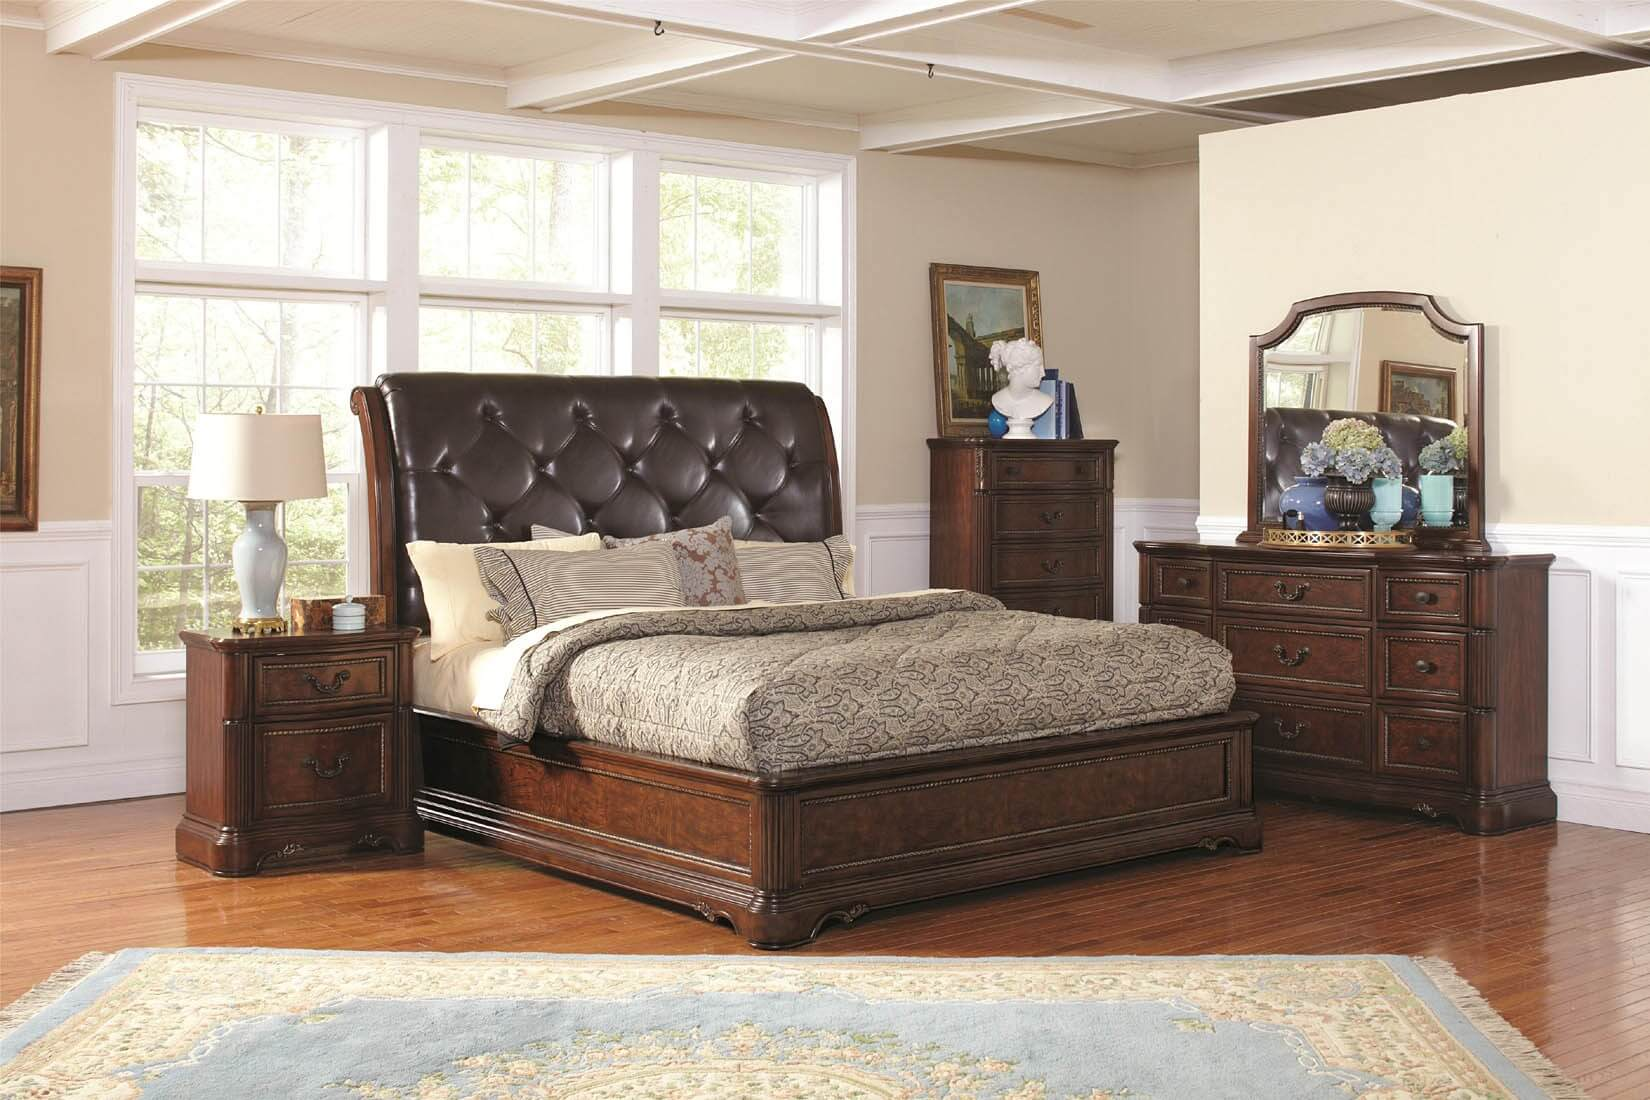 King Size Bed Frame With Headboard Loccie Better Homes